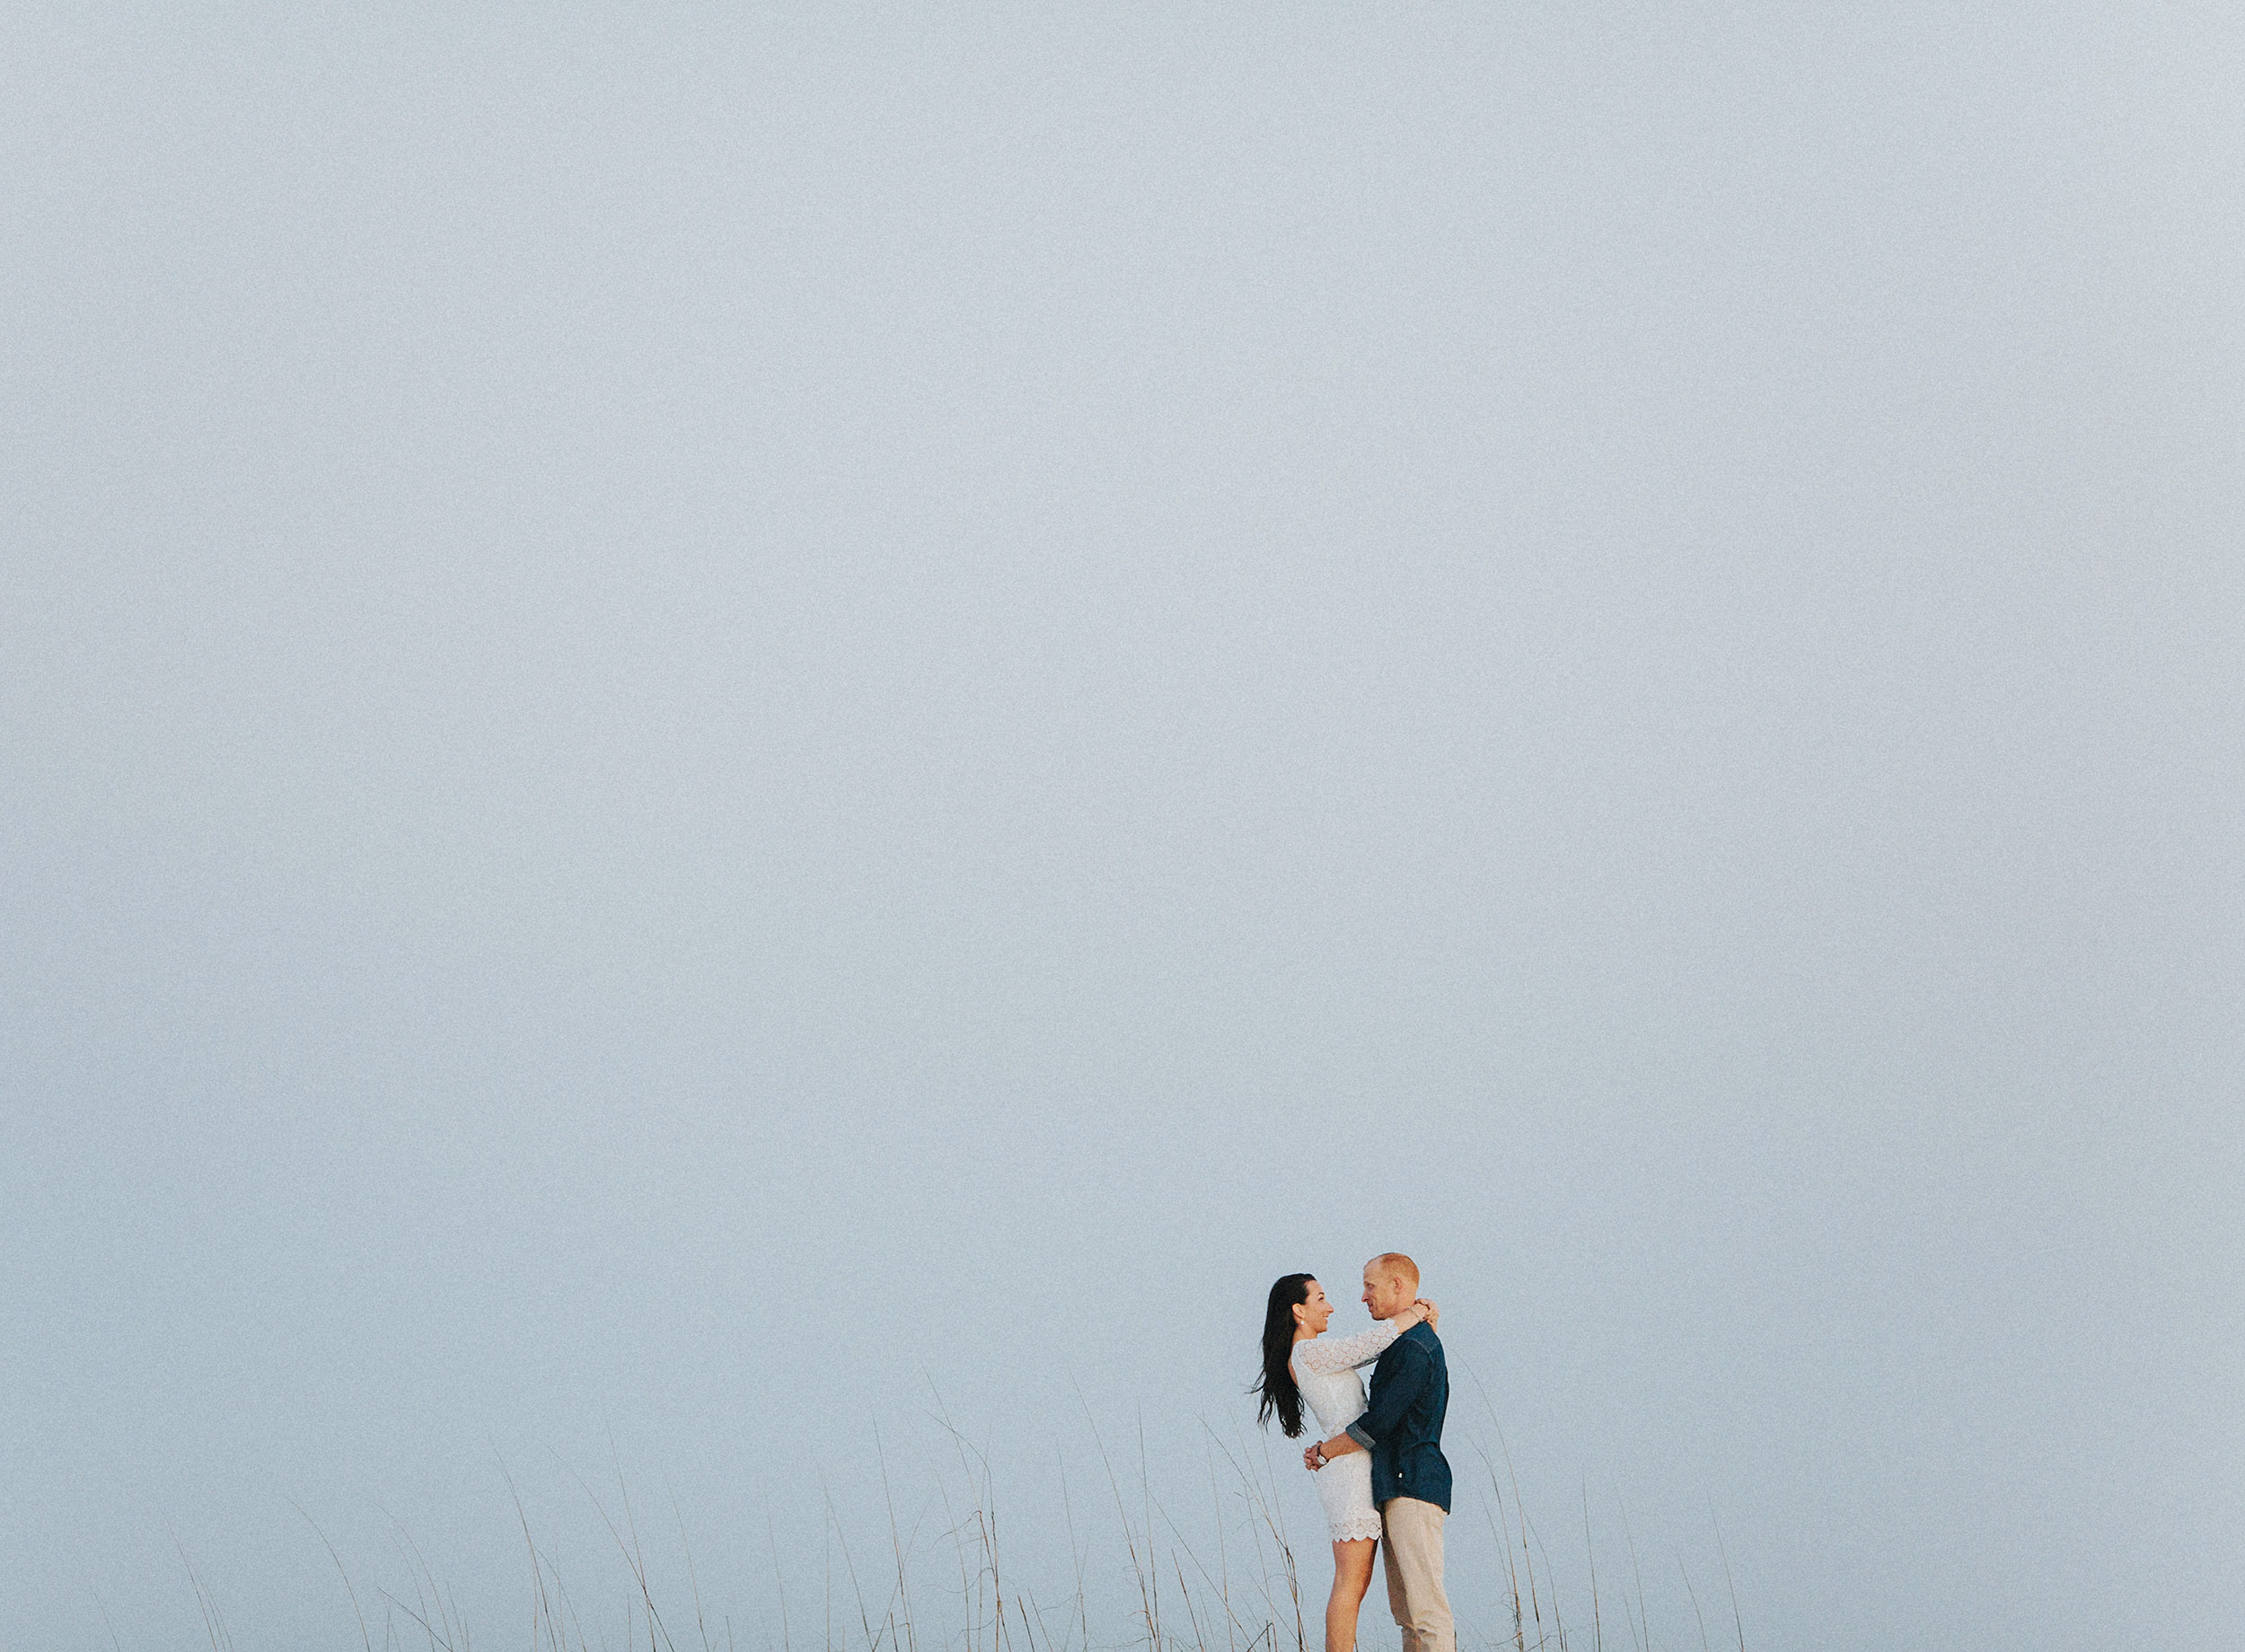 proposal-engagement-photographer-35.JPG